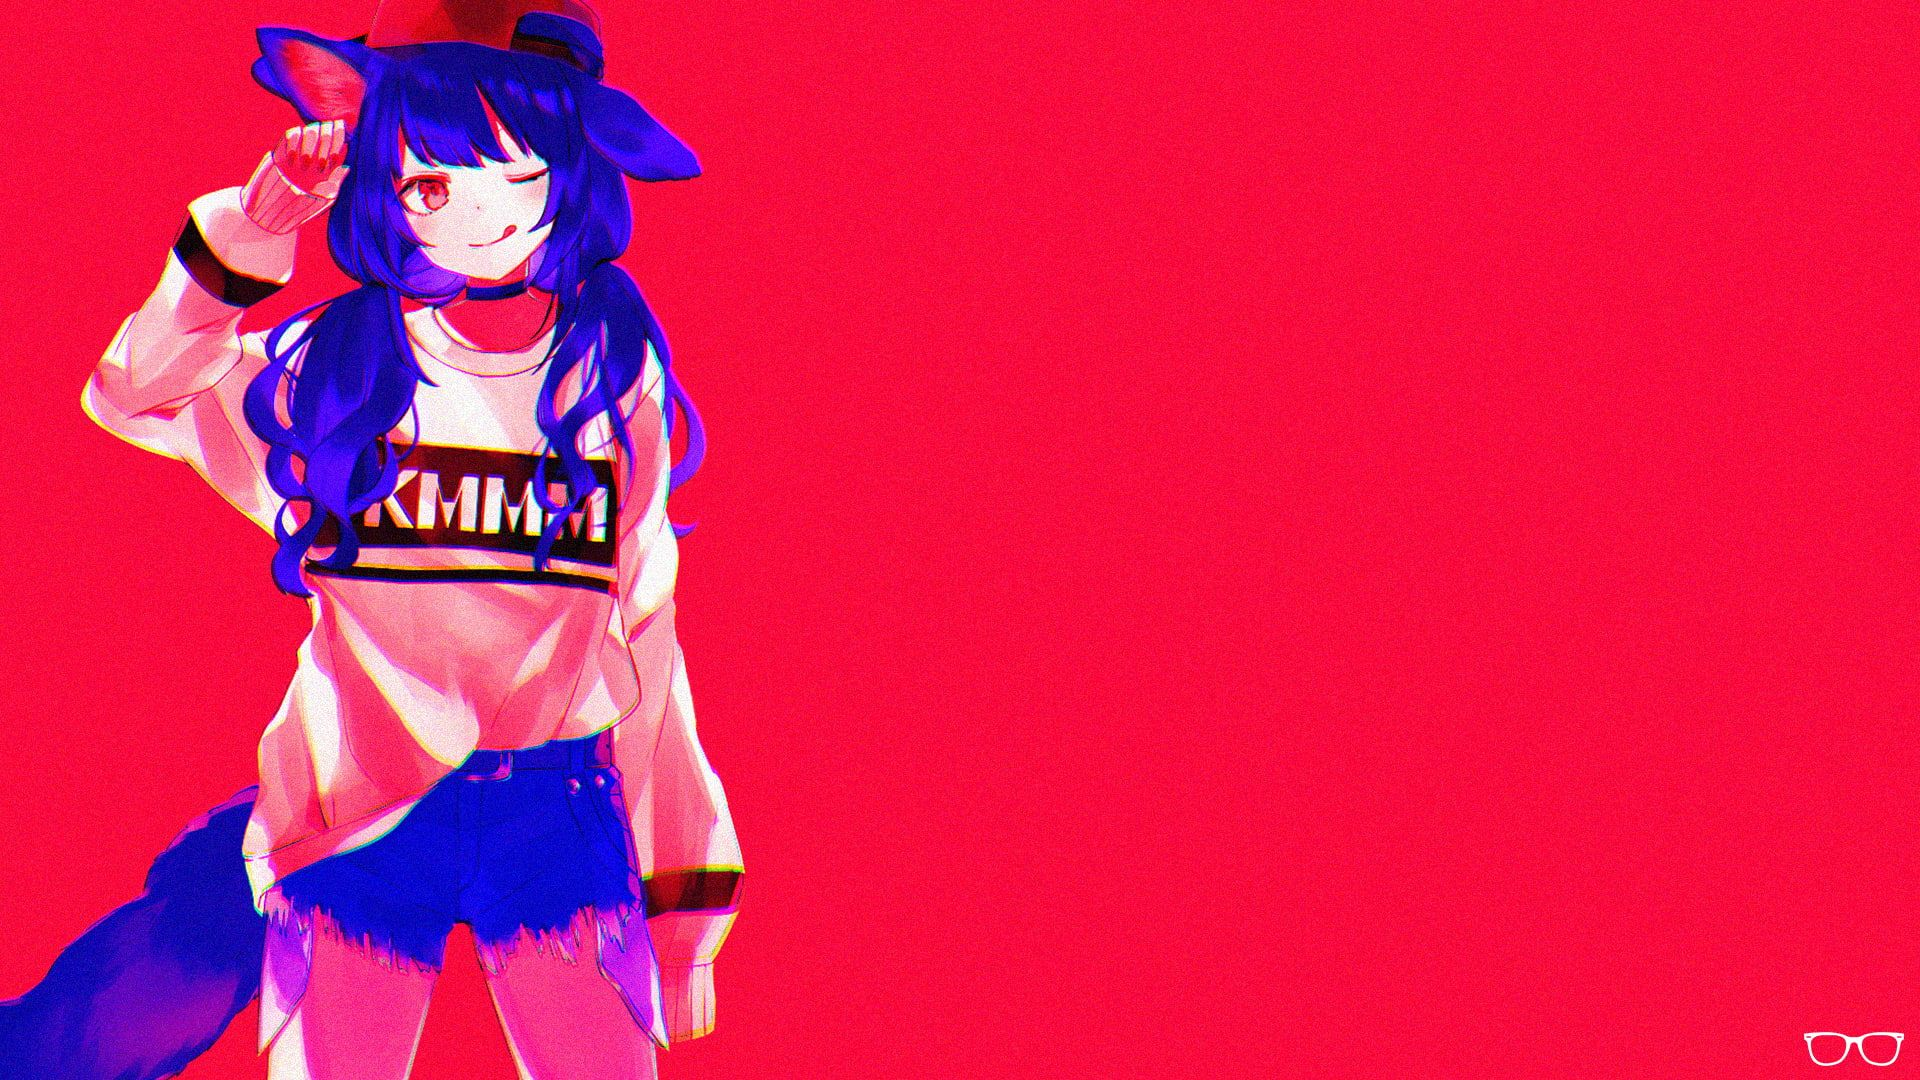 Pin On Wall Anime wallpaper blue and red